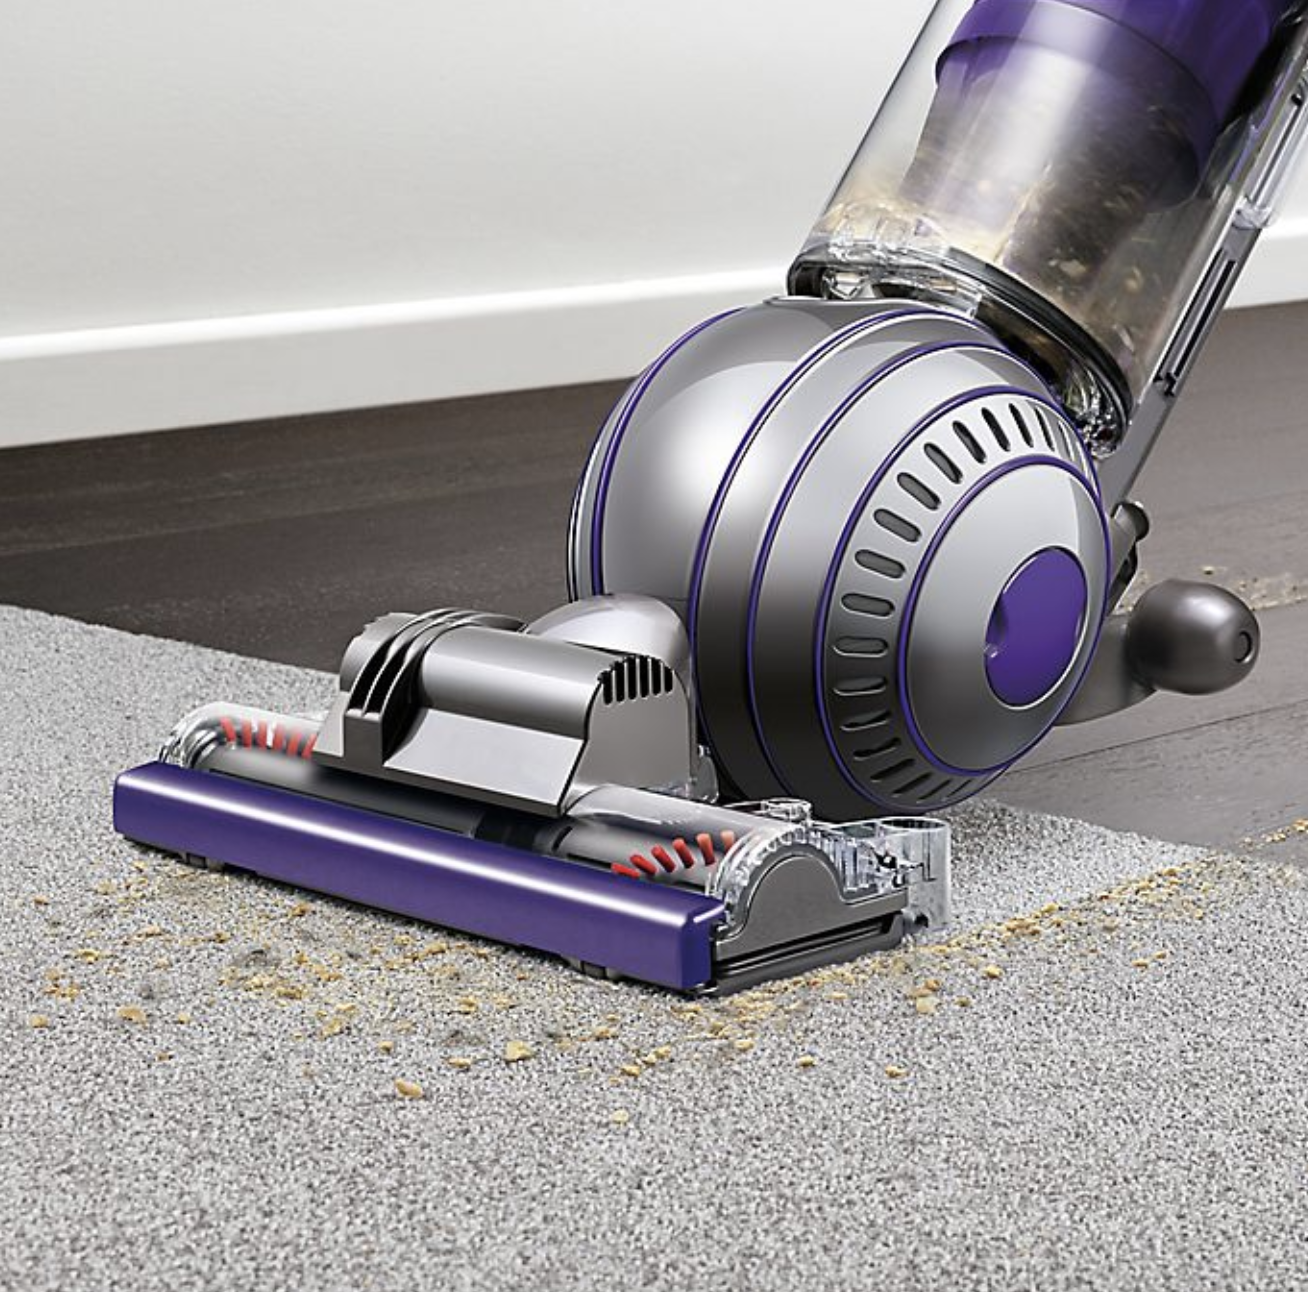 Dyson vacuum in use